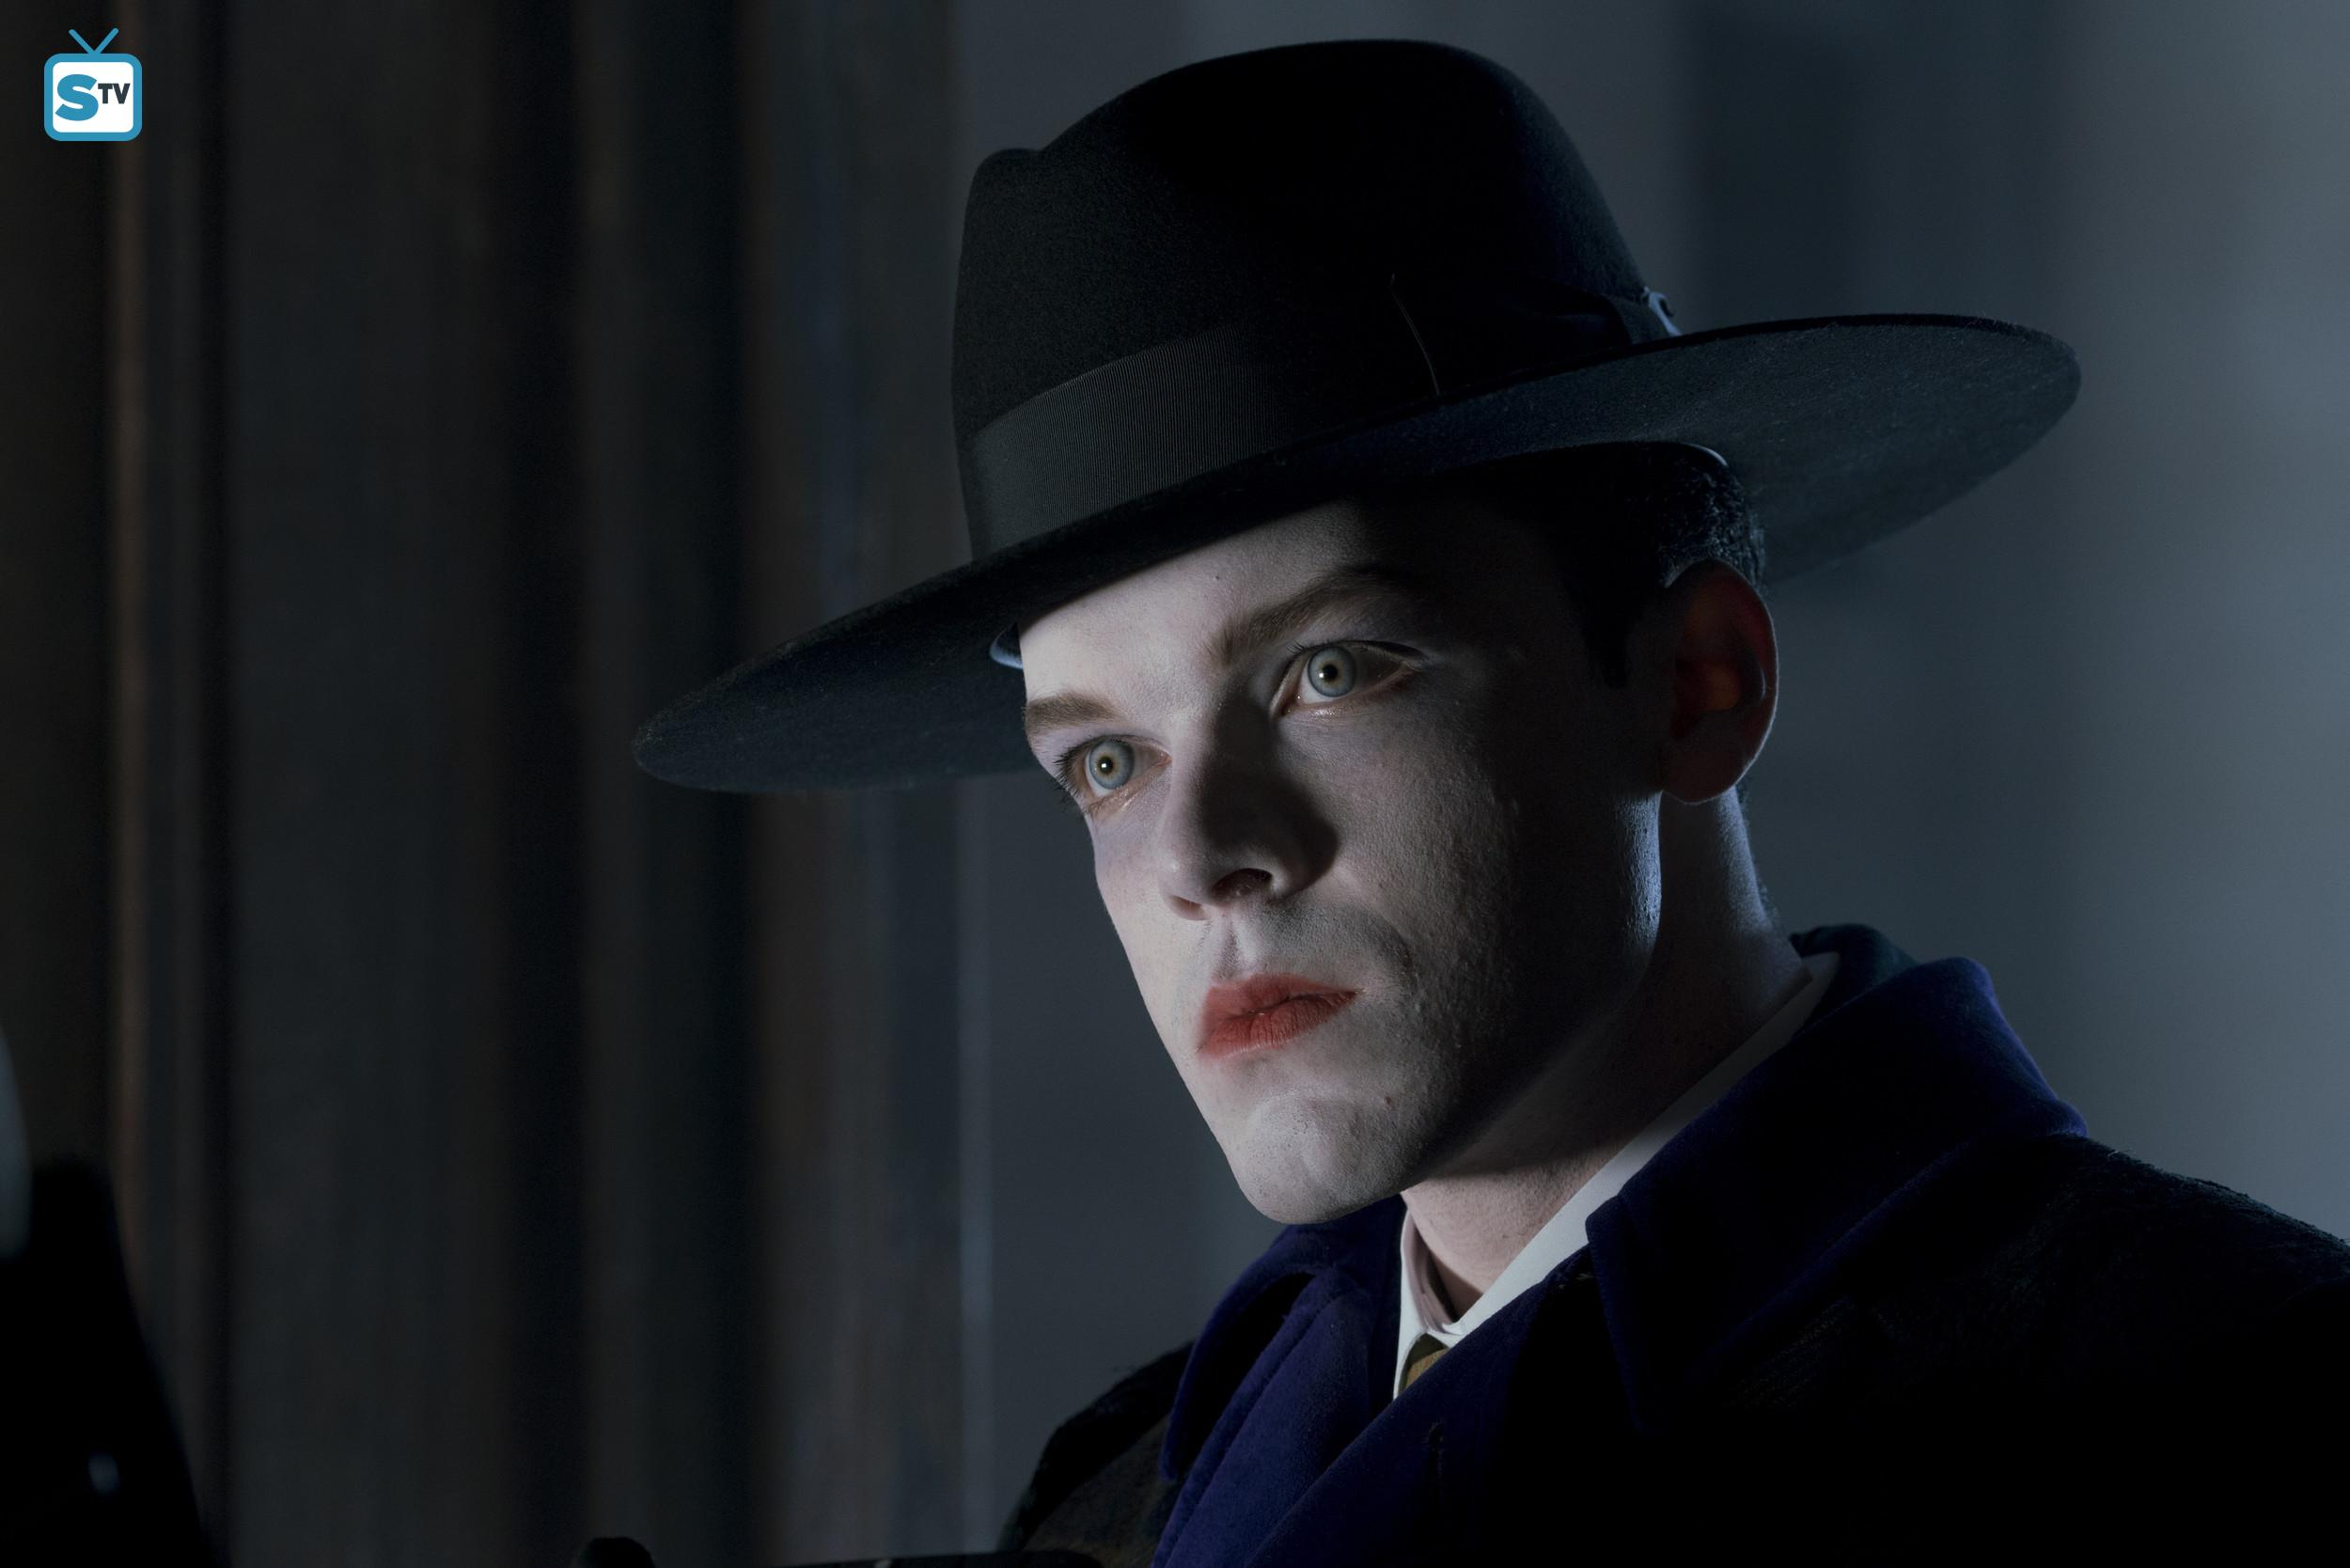 Gotham images 4x21   One Bad Day   Jeremiah HD wallpaper and 2500x1668